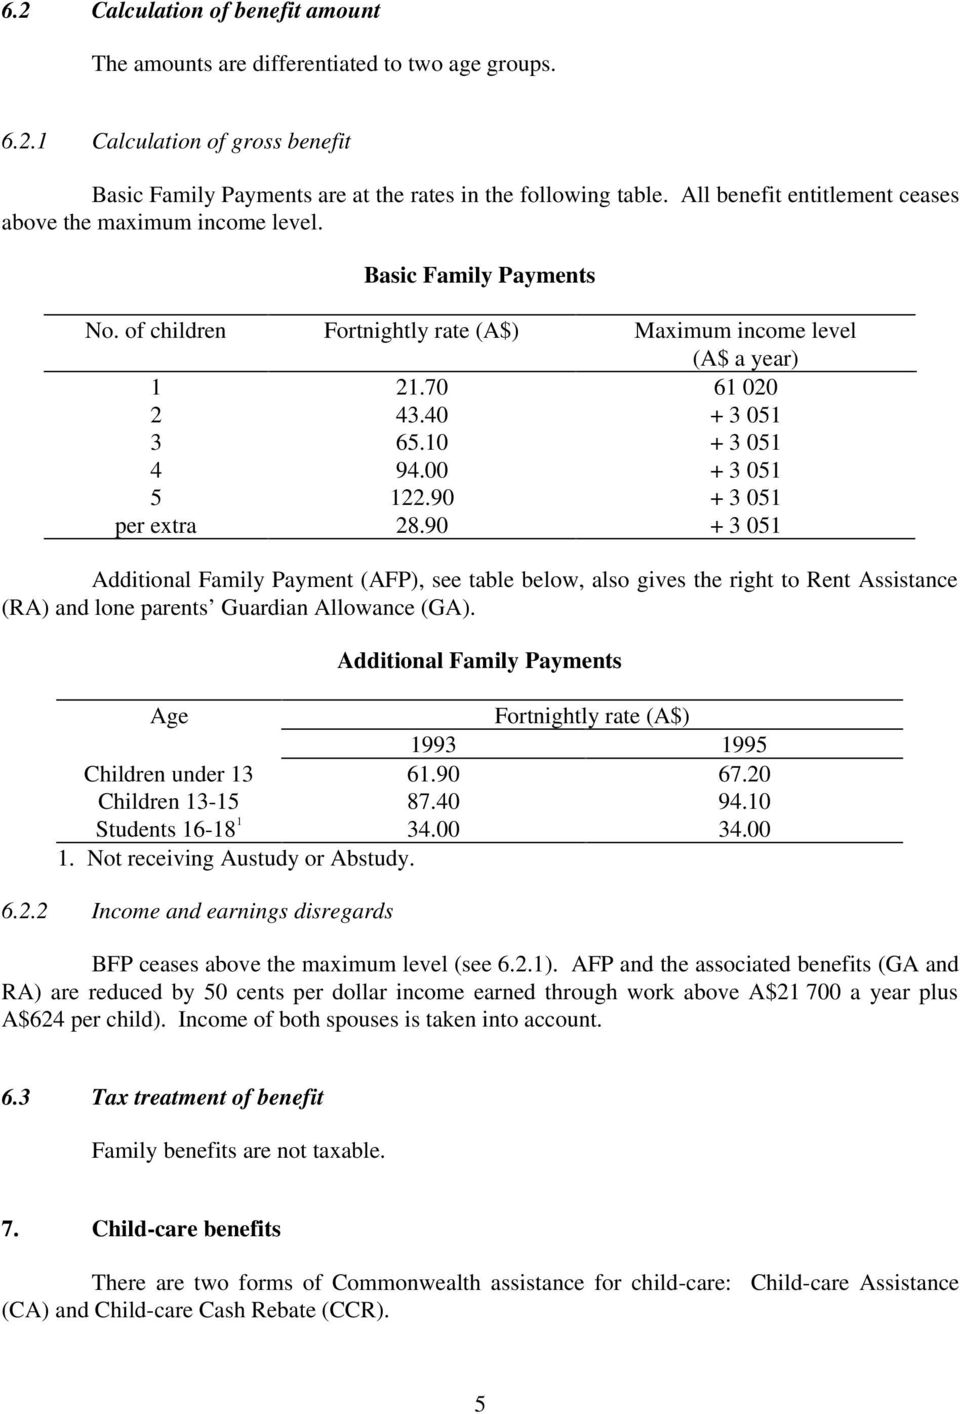 1 + 3 51 4 94. + 3 51 5 122.9 + 3 51 per extra 28.9 + 3 51 Additional Family Payment (AFP), see table below, also gives the right to Rent Assistance (RA) and lone parents Guardian Allowance (GA).